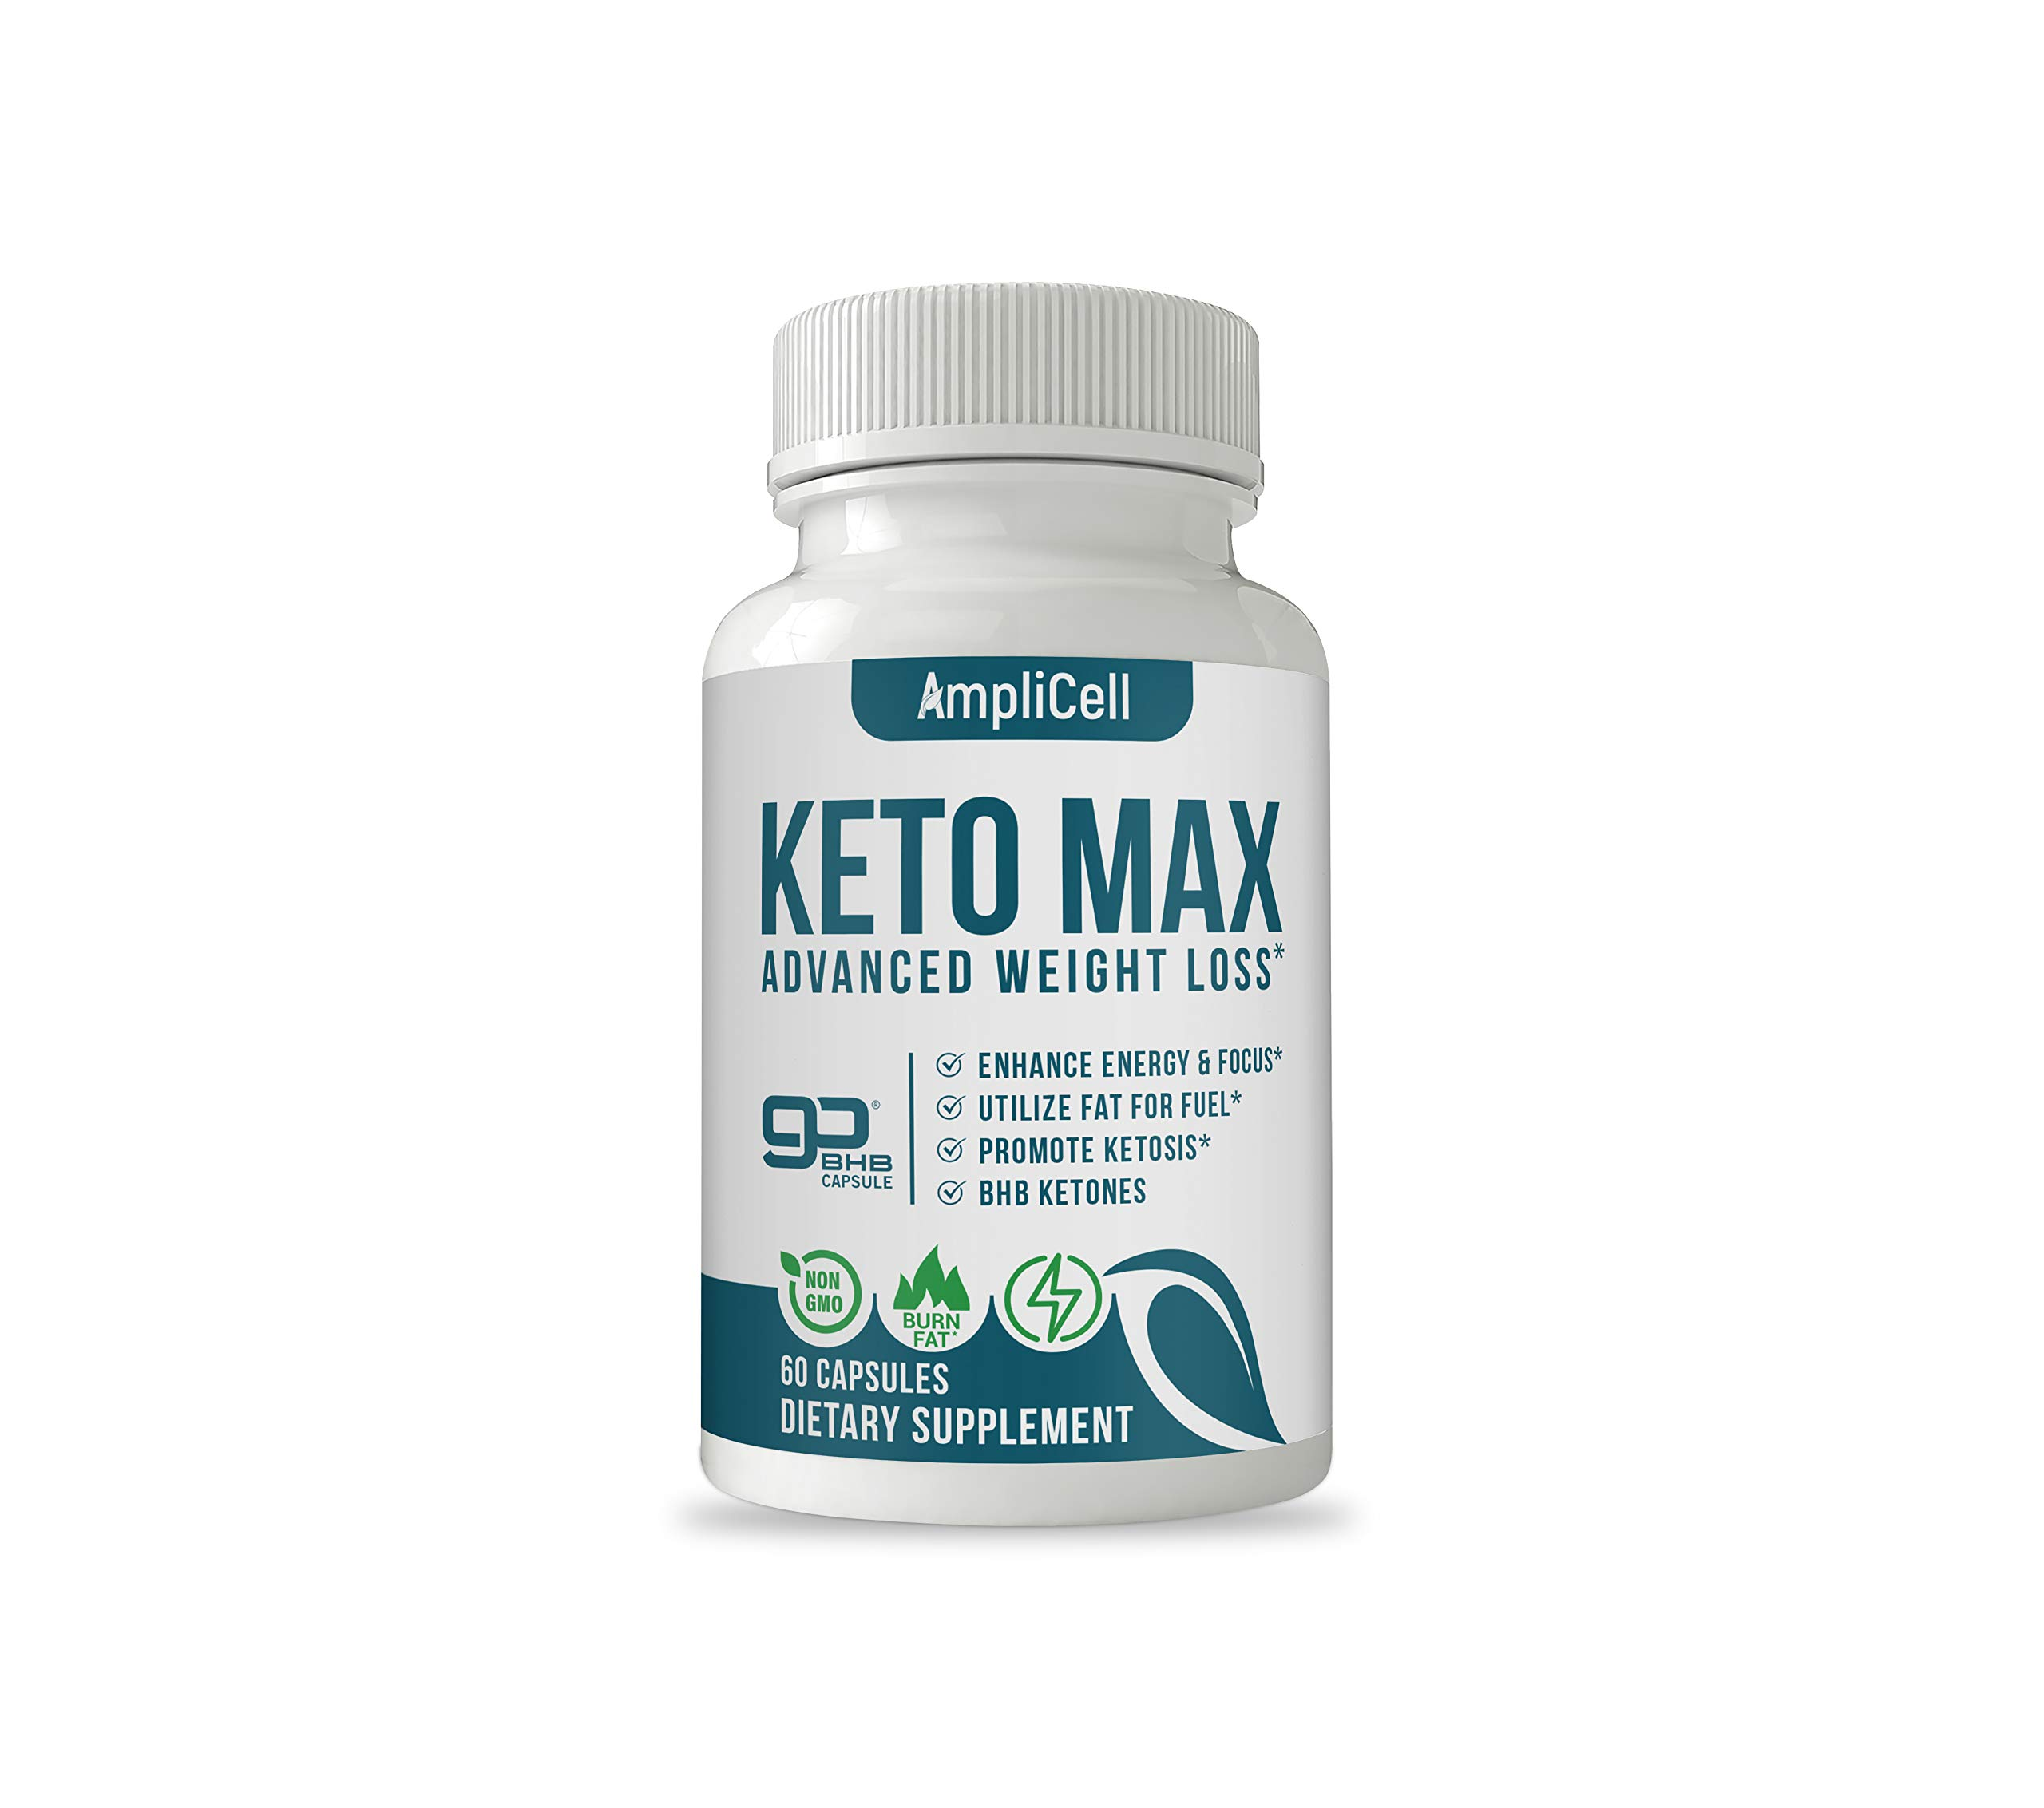 Keto Pills - Advanced Weight Loss Supplements w/carb Blocker - Keto Weight Loss Pills to Burn Fat Fast - Boost Energy and Metabolism - Amplicell Keto Diet Pills by AMPLICELL